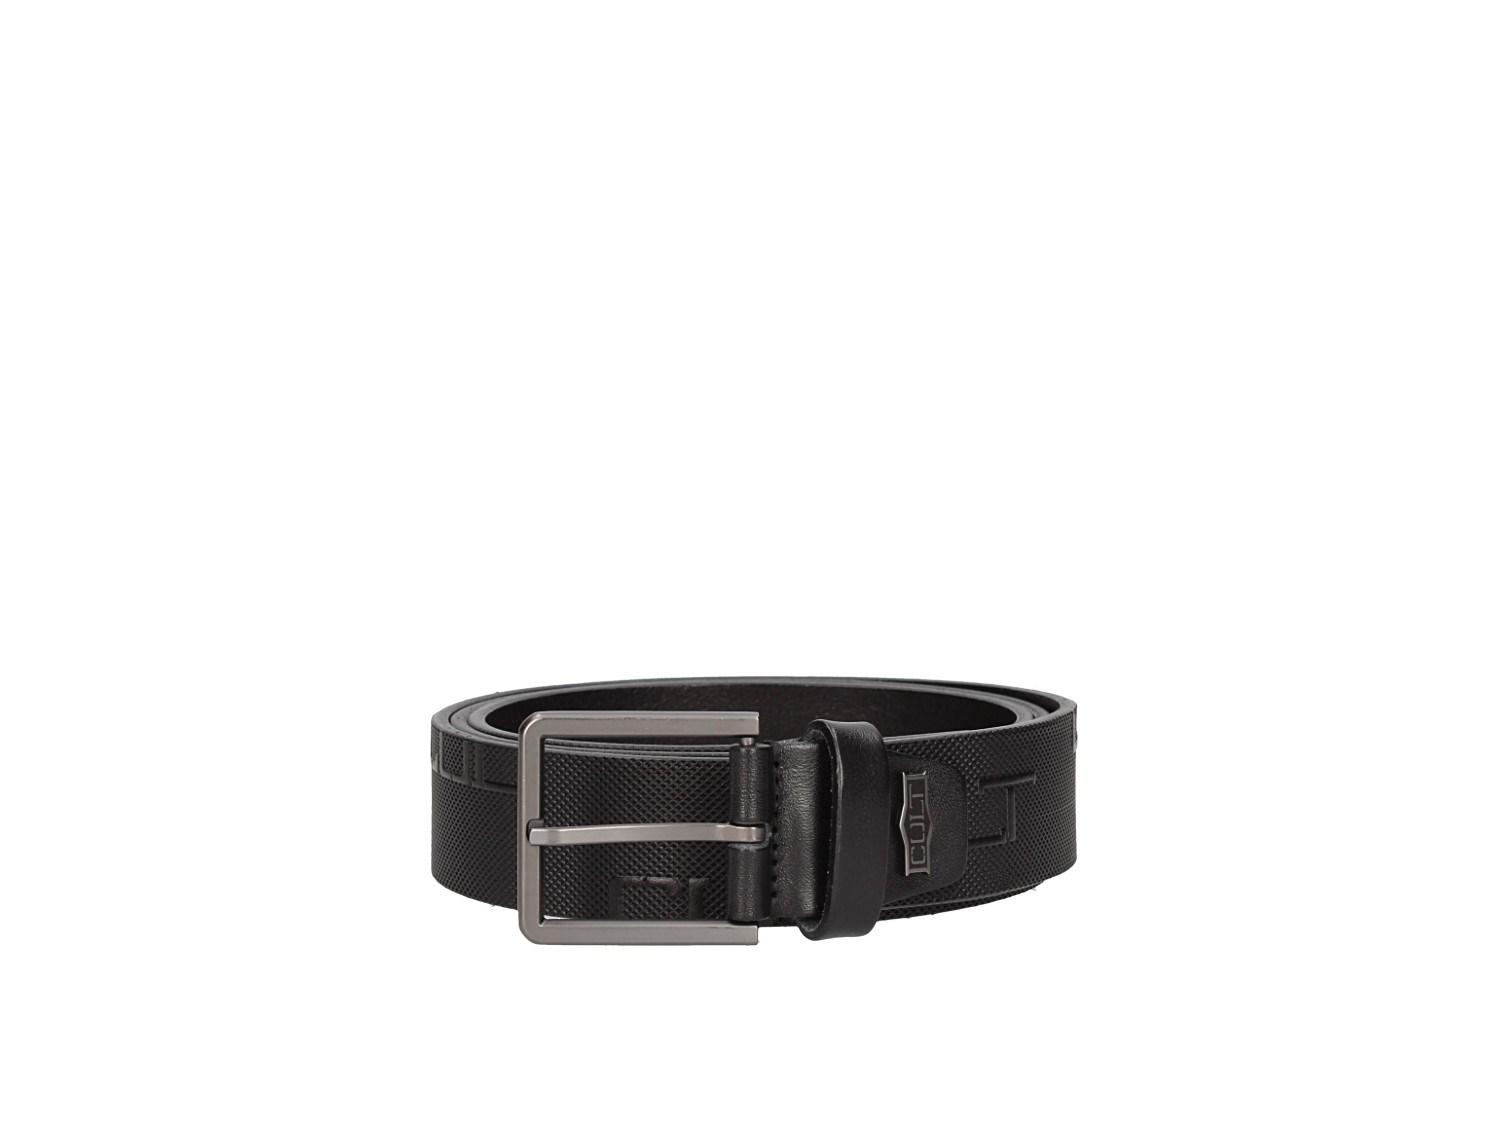 Cult 1001 Black Accessories Man Belt